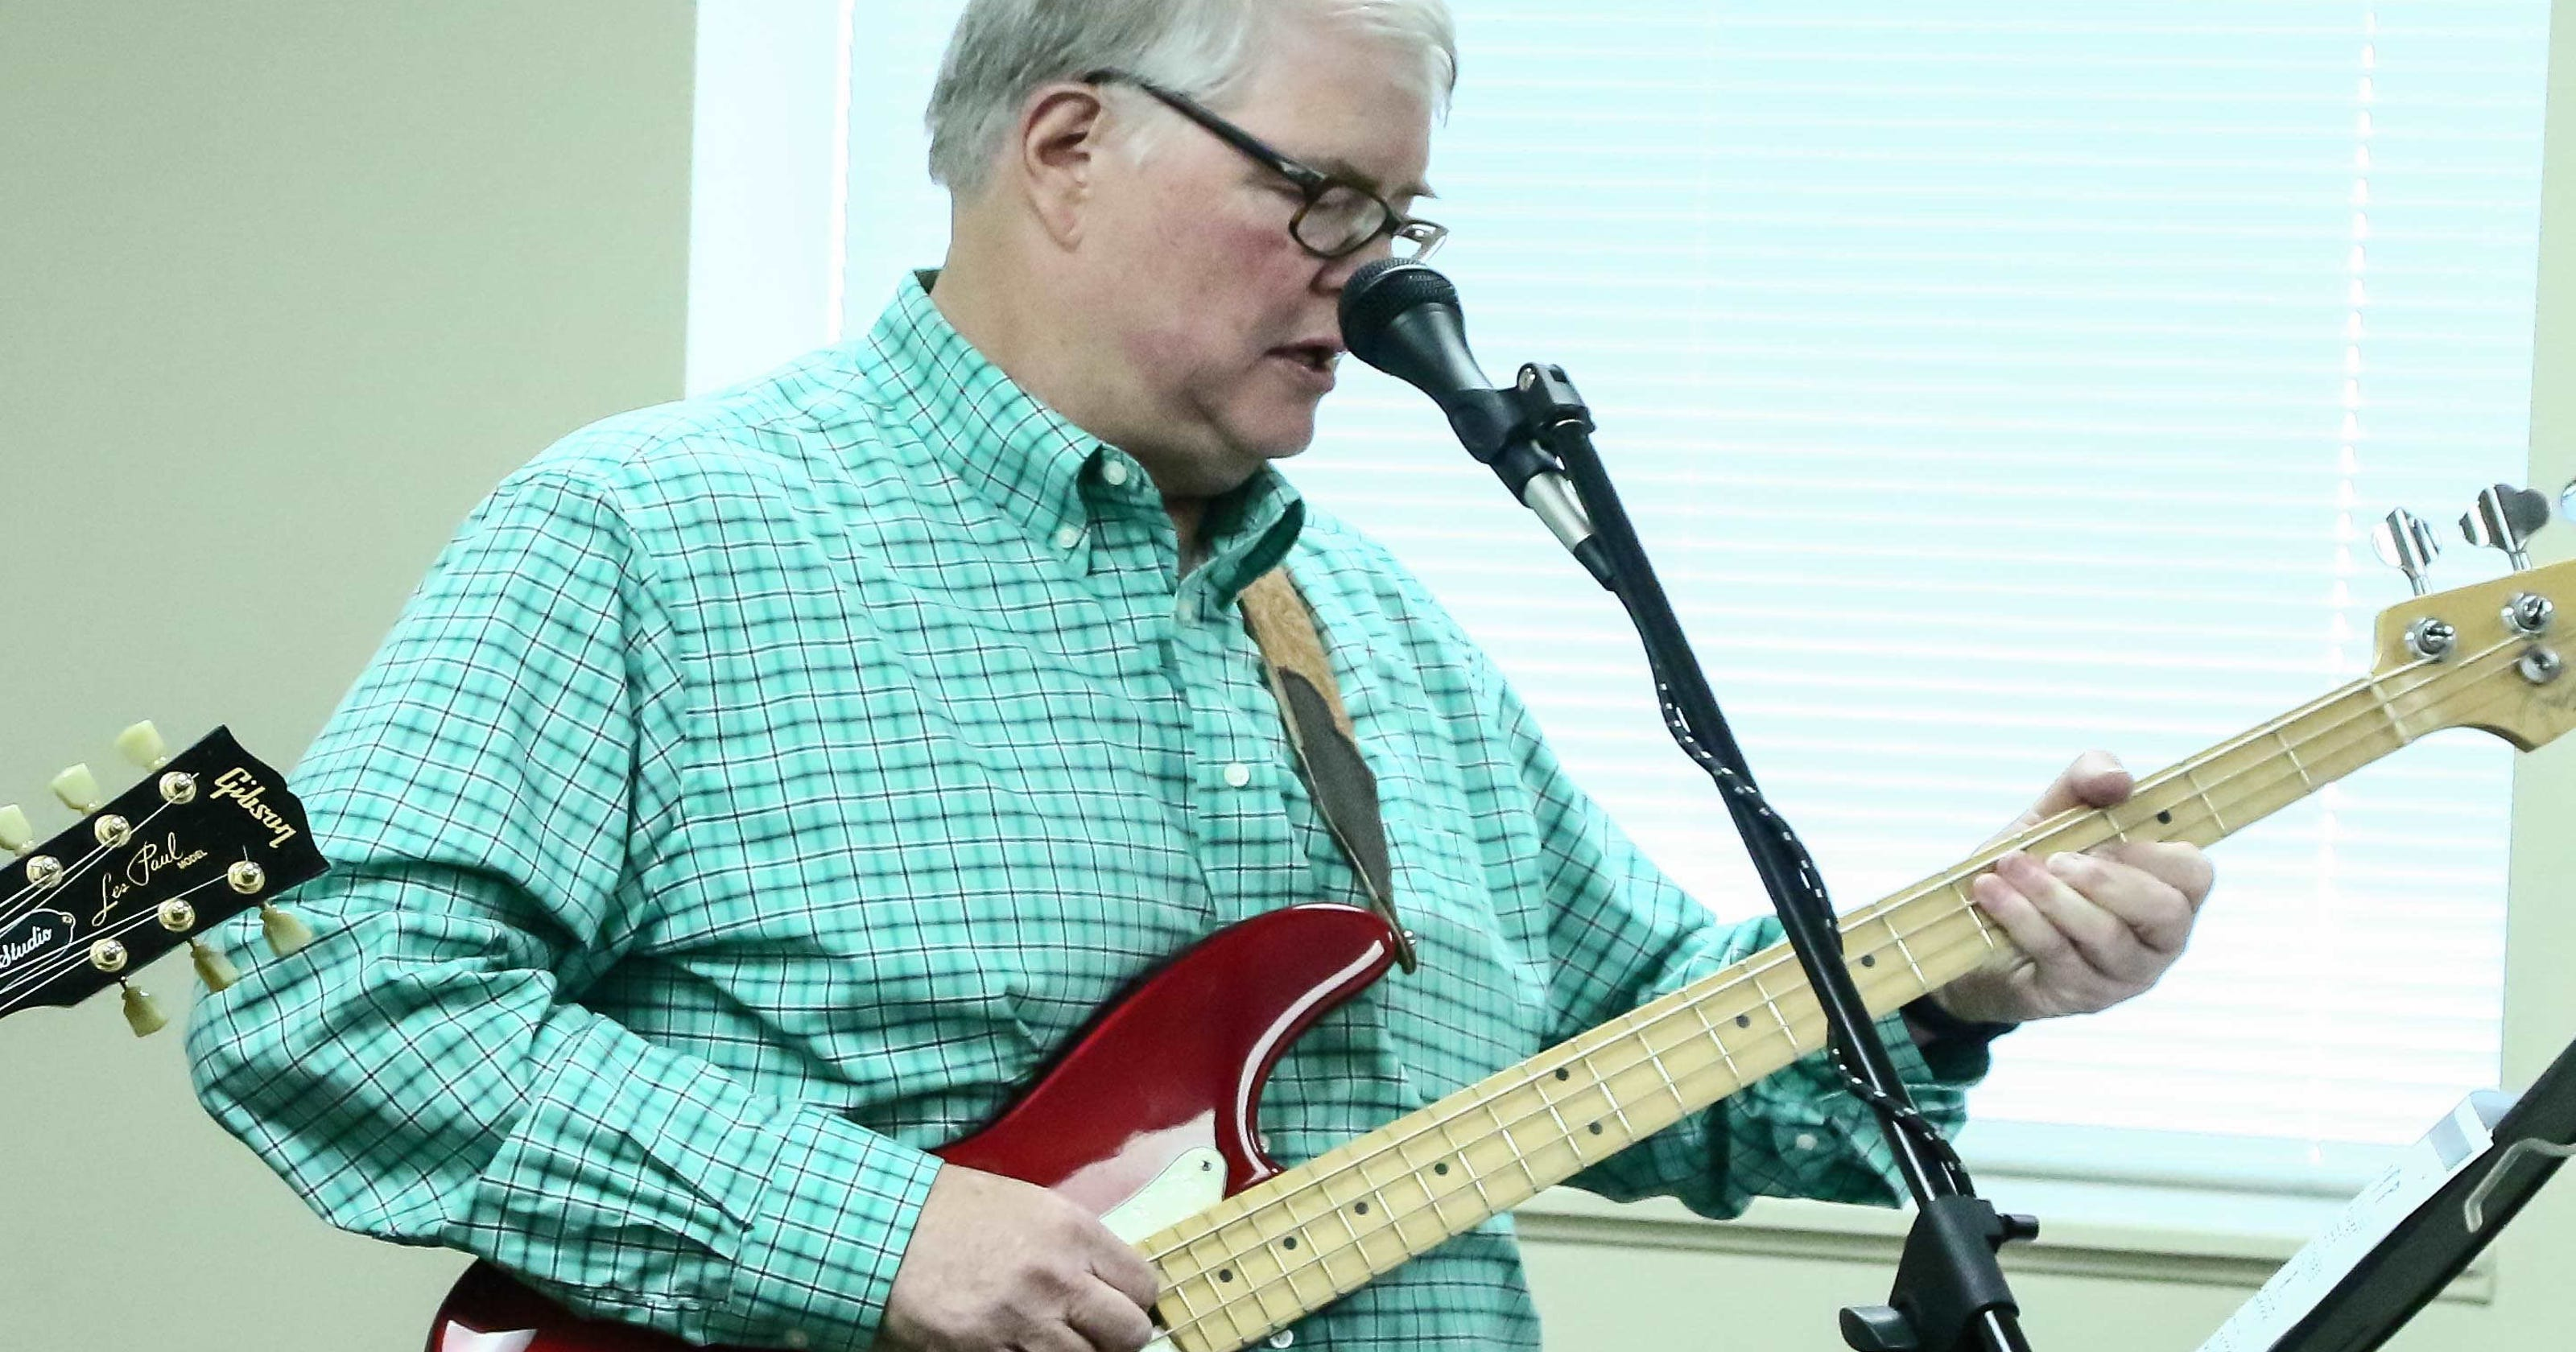 Stroke Victims Relearn Guitar Together